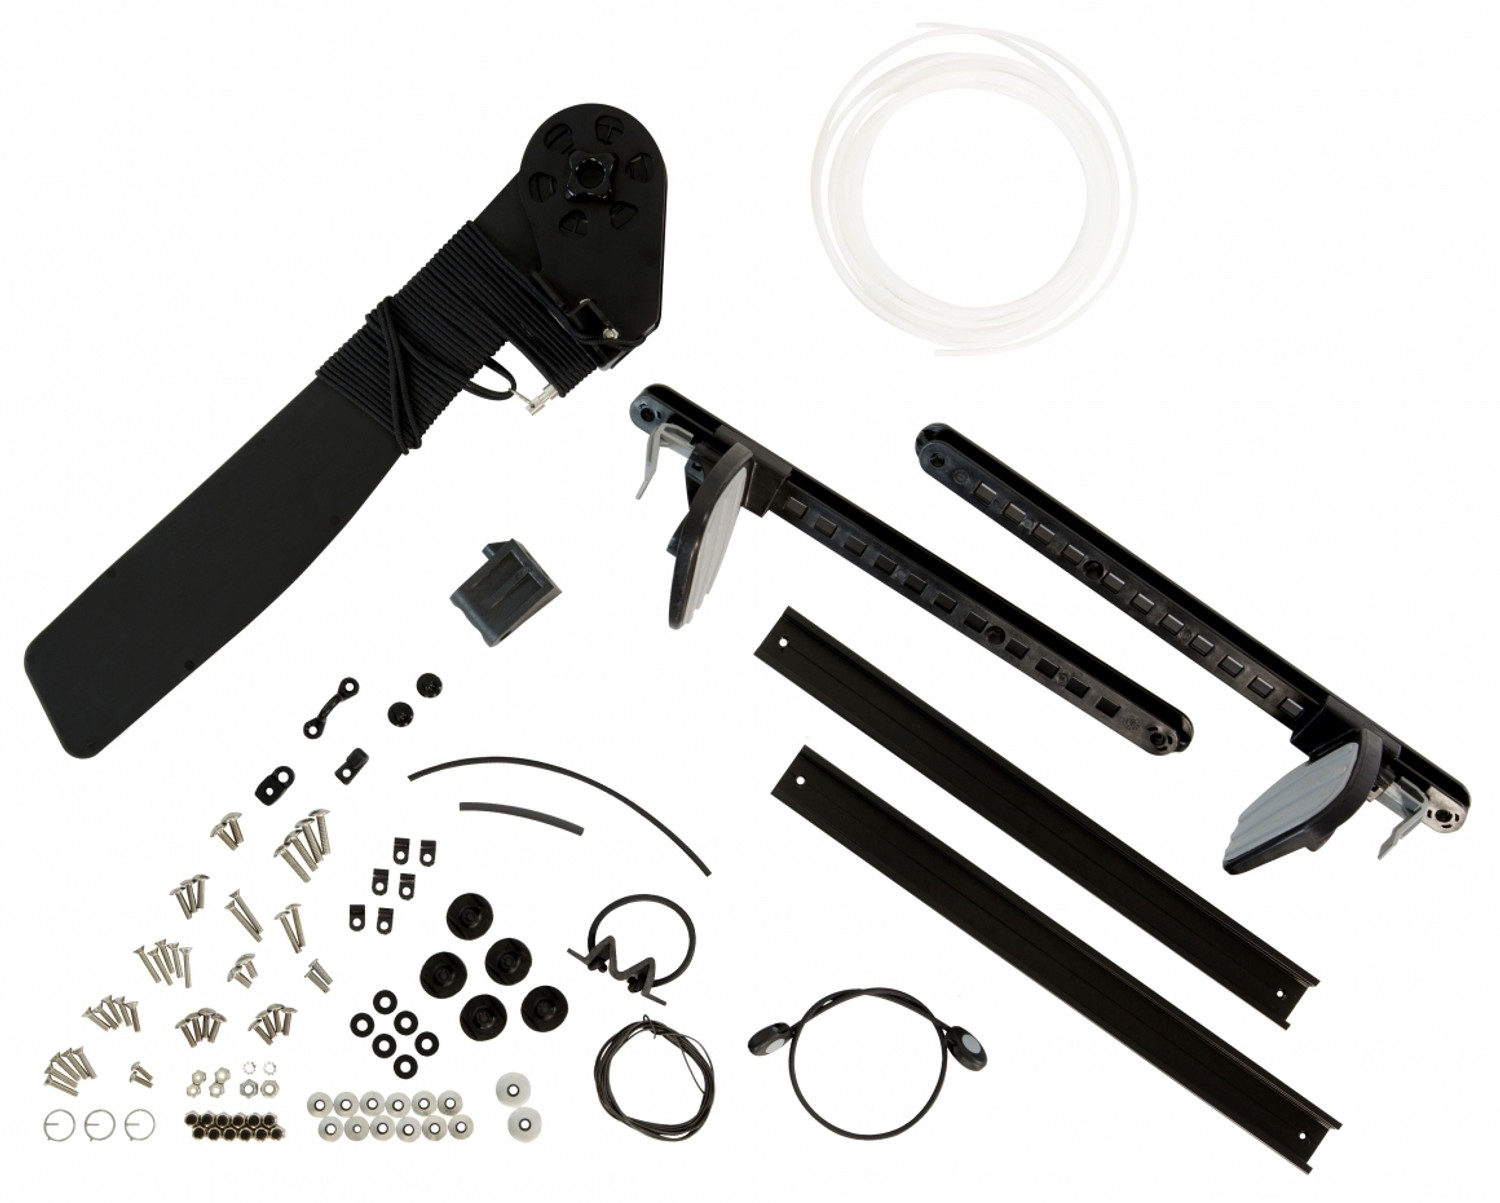 XL Pedal rudder Kit for Solo Kayak